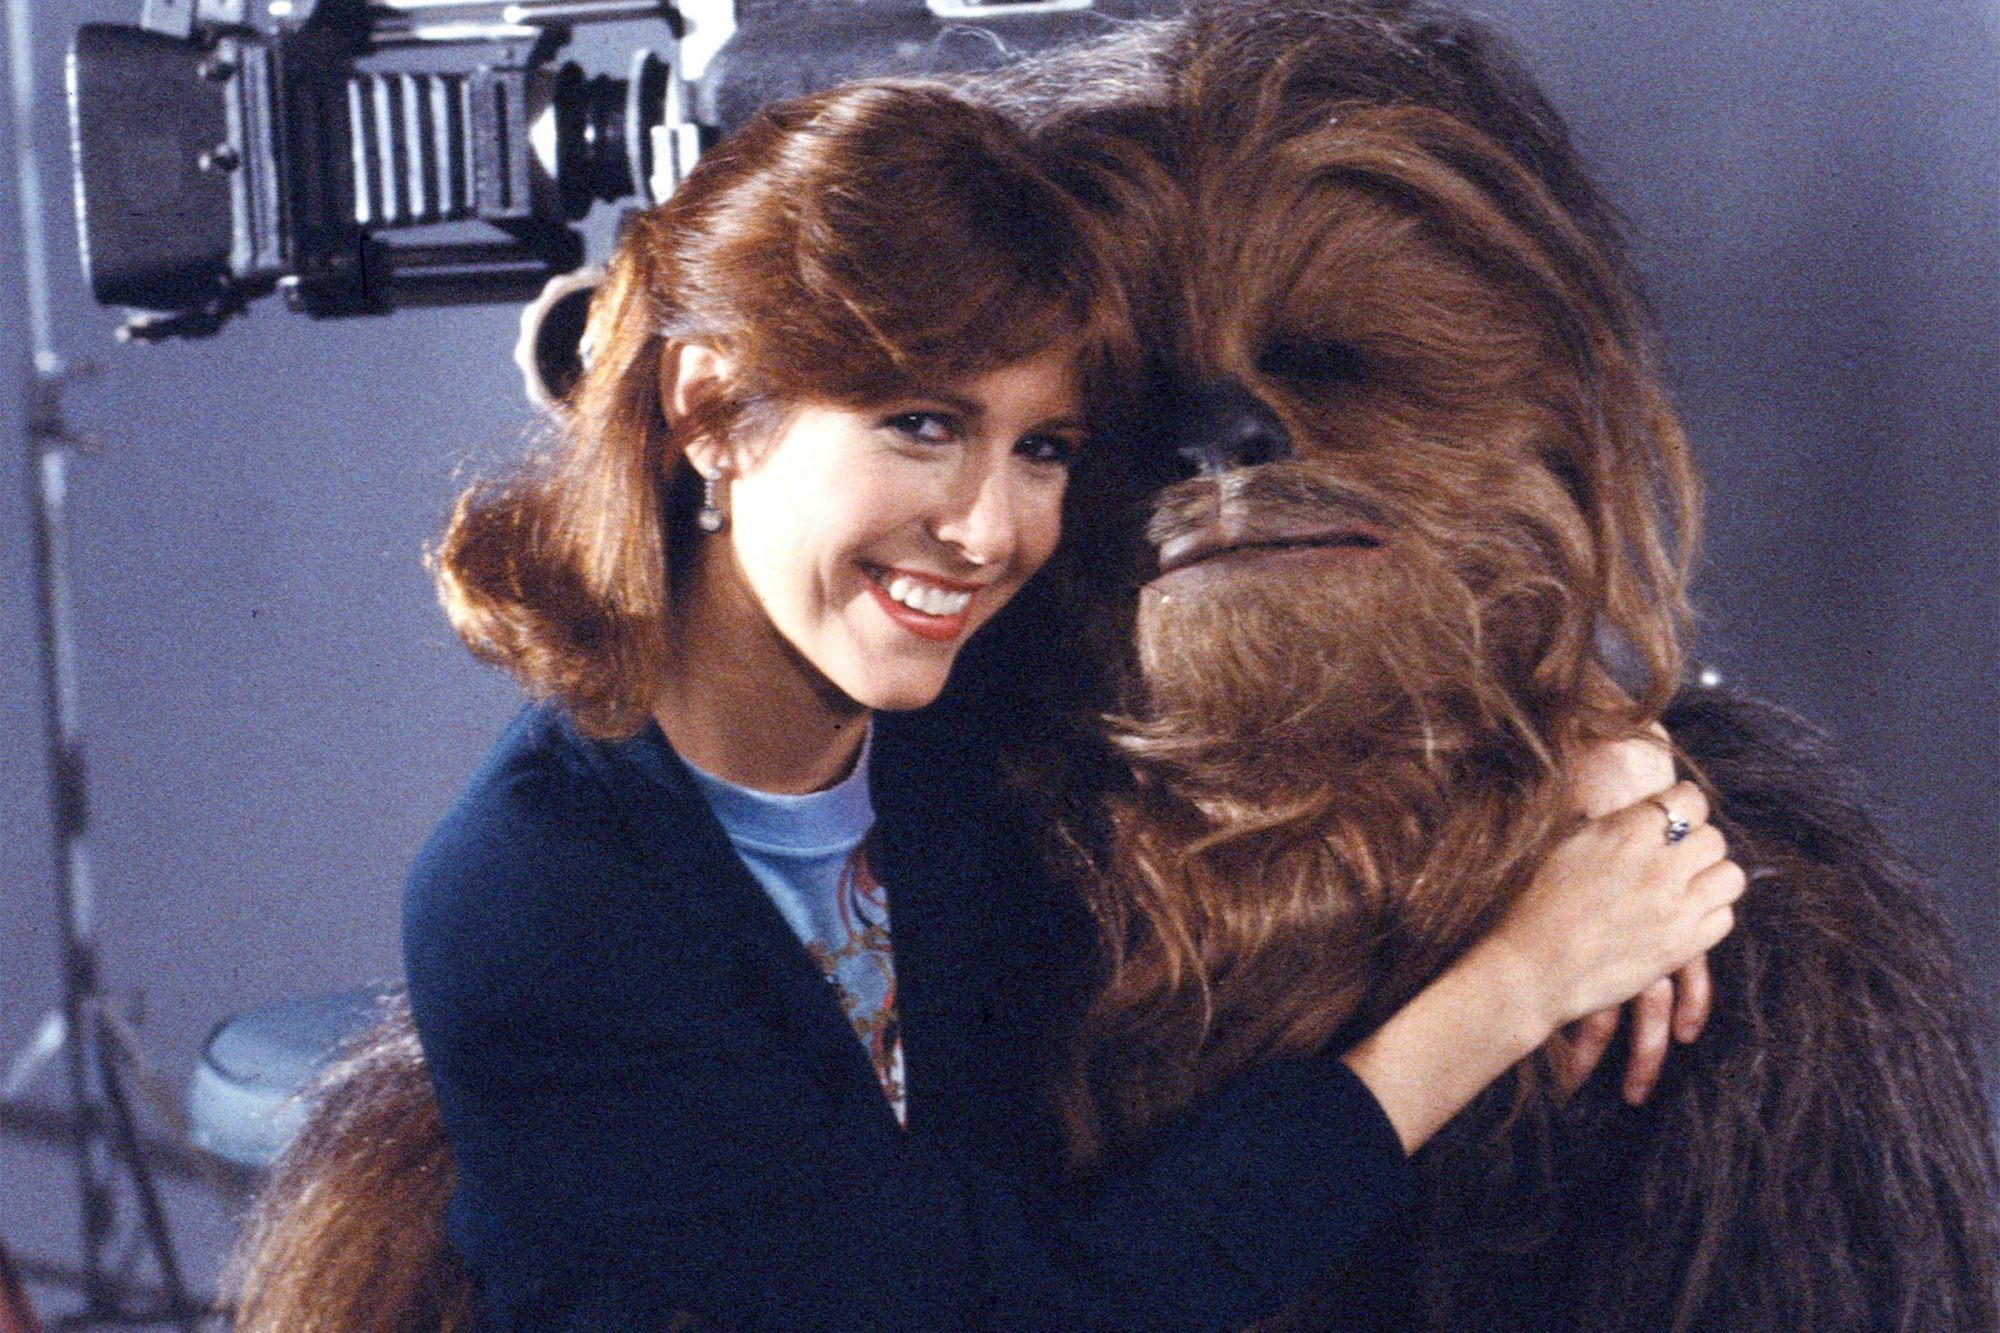 Promotional portrait of American actress Carrie Fisher as she sits on the lap of British actor Peter Mayhew, in costume as Chewbacca, on the set of 'Classic Creatures: Return of the Jedi' (directed by Robert Guenette), a documentary about the second film in the Star Wars saga that focuses on variety of unusual beings that populate the film's world; the program was originally broadcast on November 21, 1983. (Photo by CBS Photo Archive/Hulton Archive)